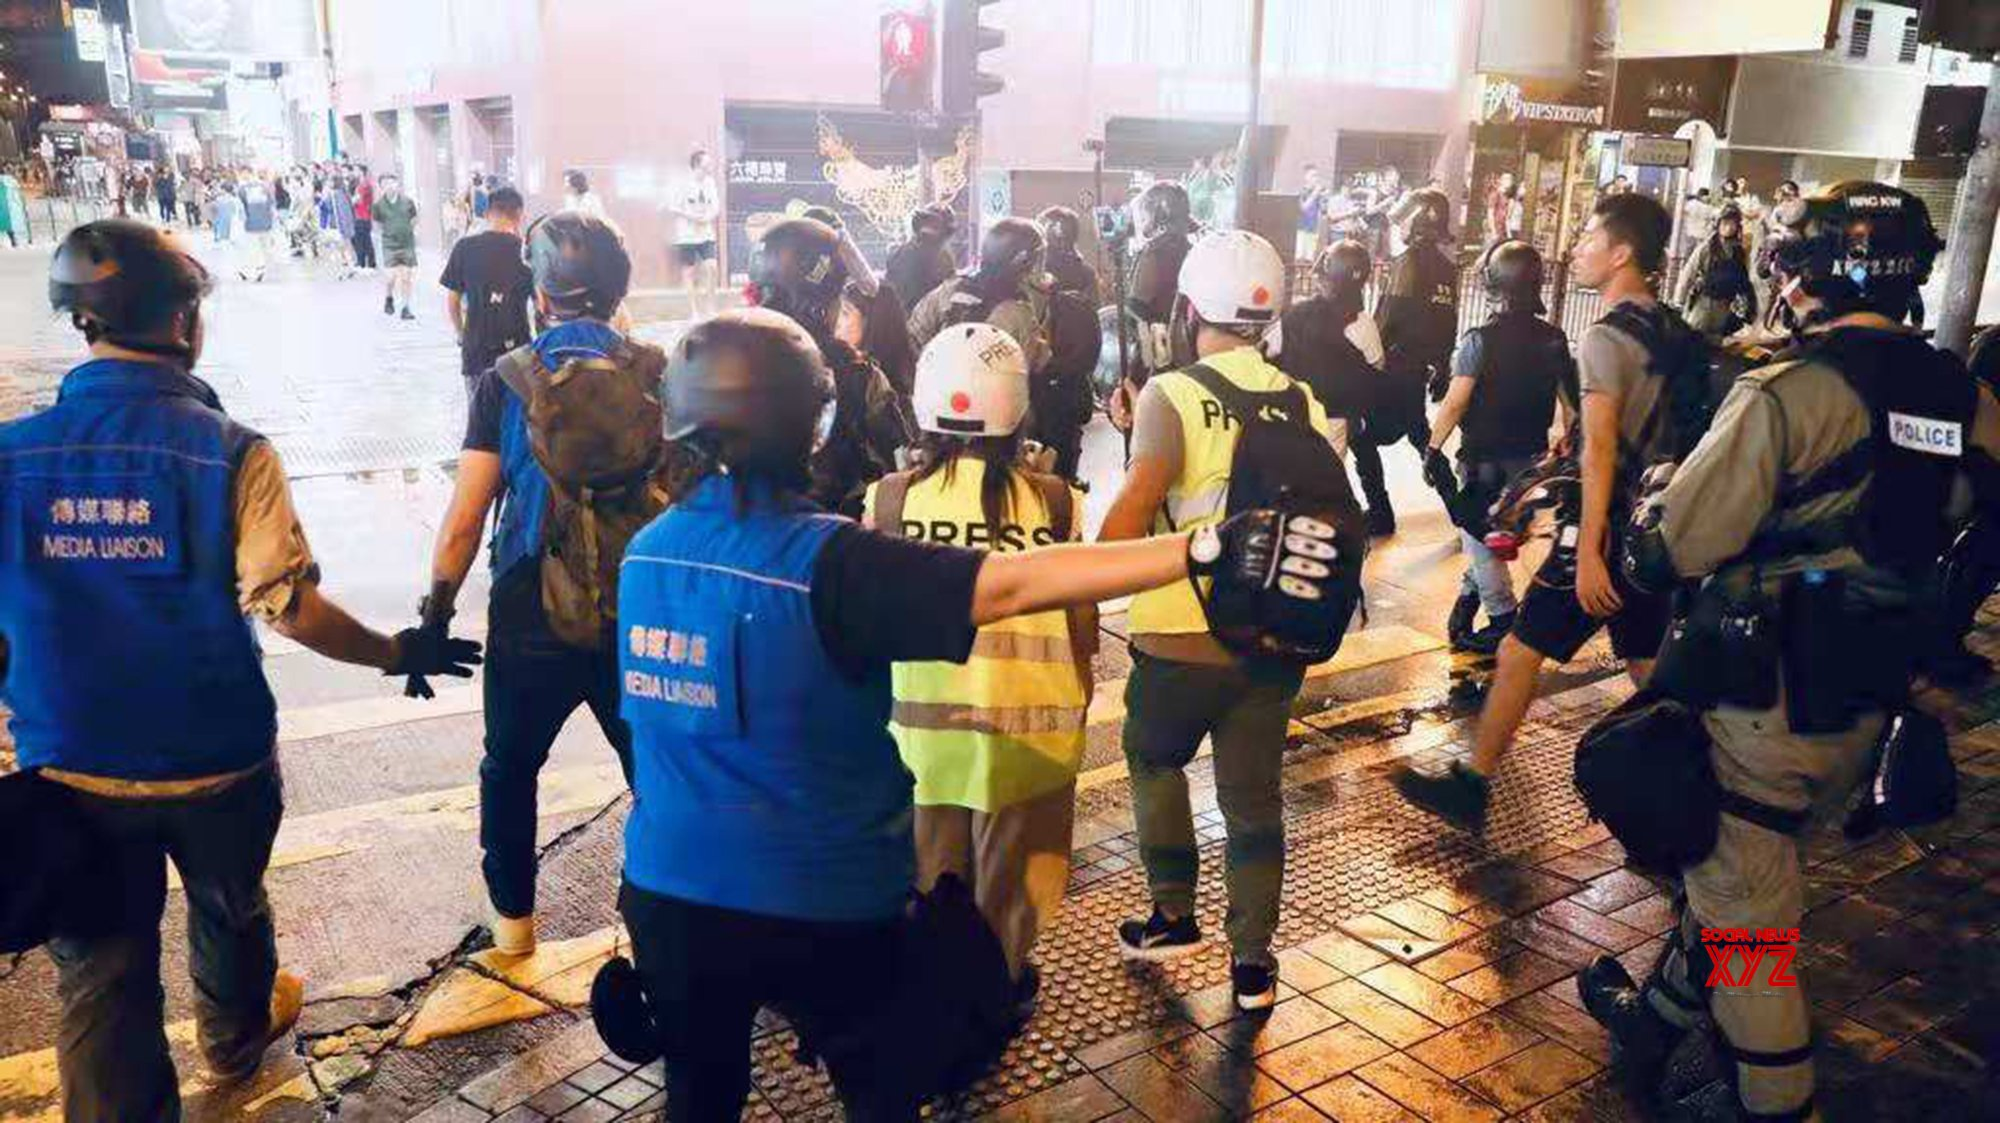 HK protesters to mark festival with peaceful demonstrations